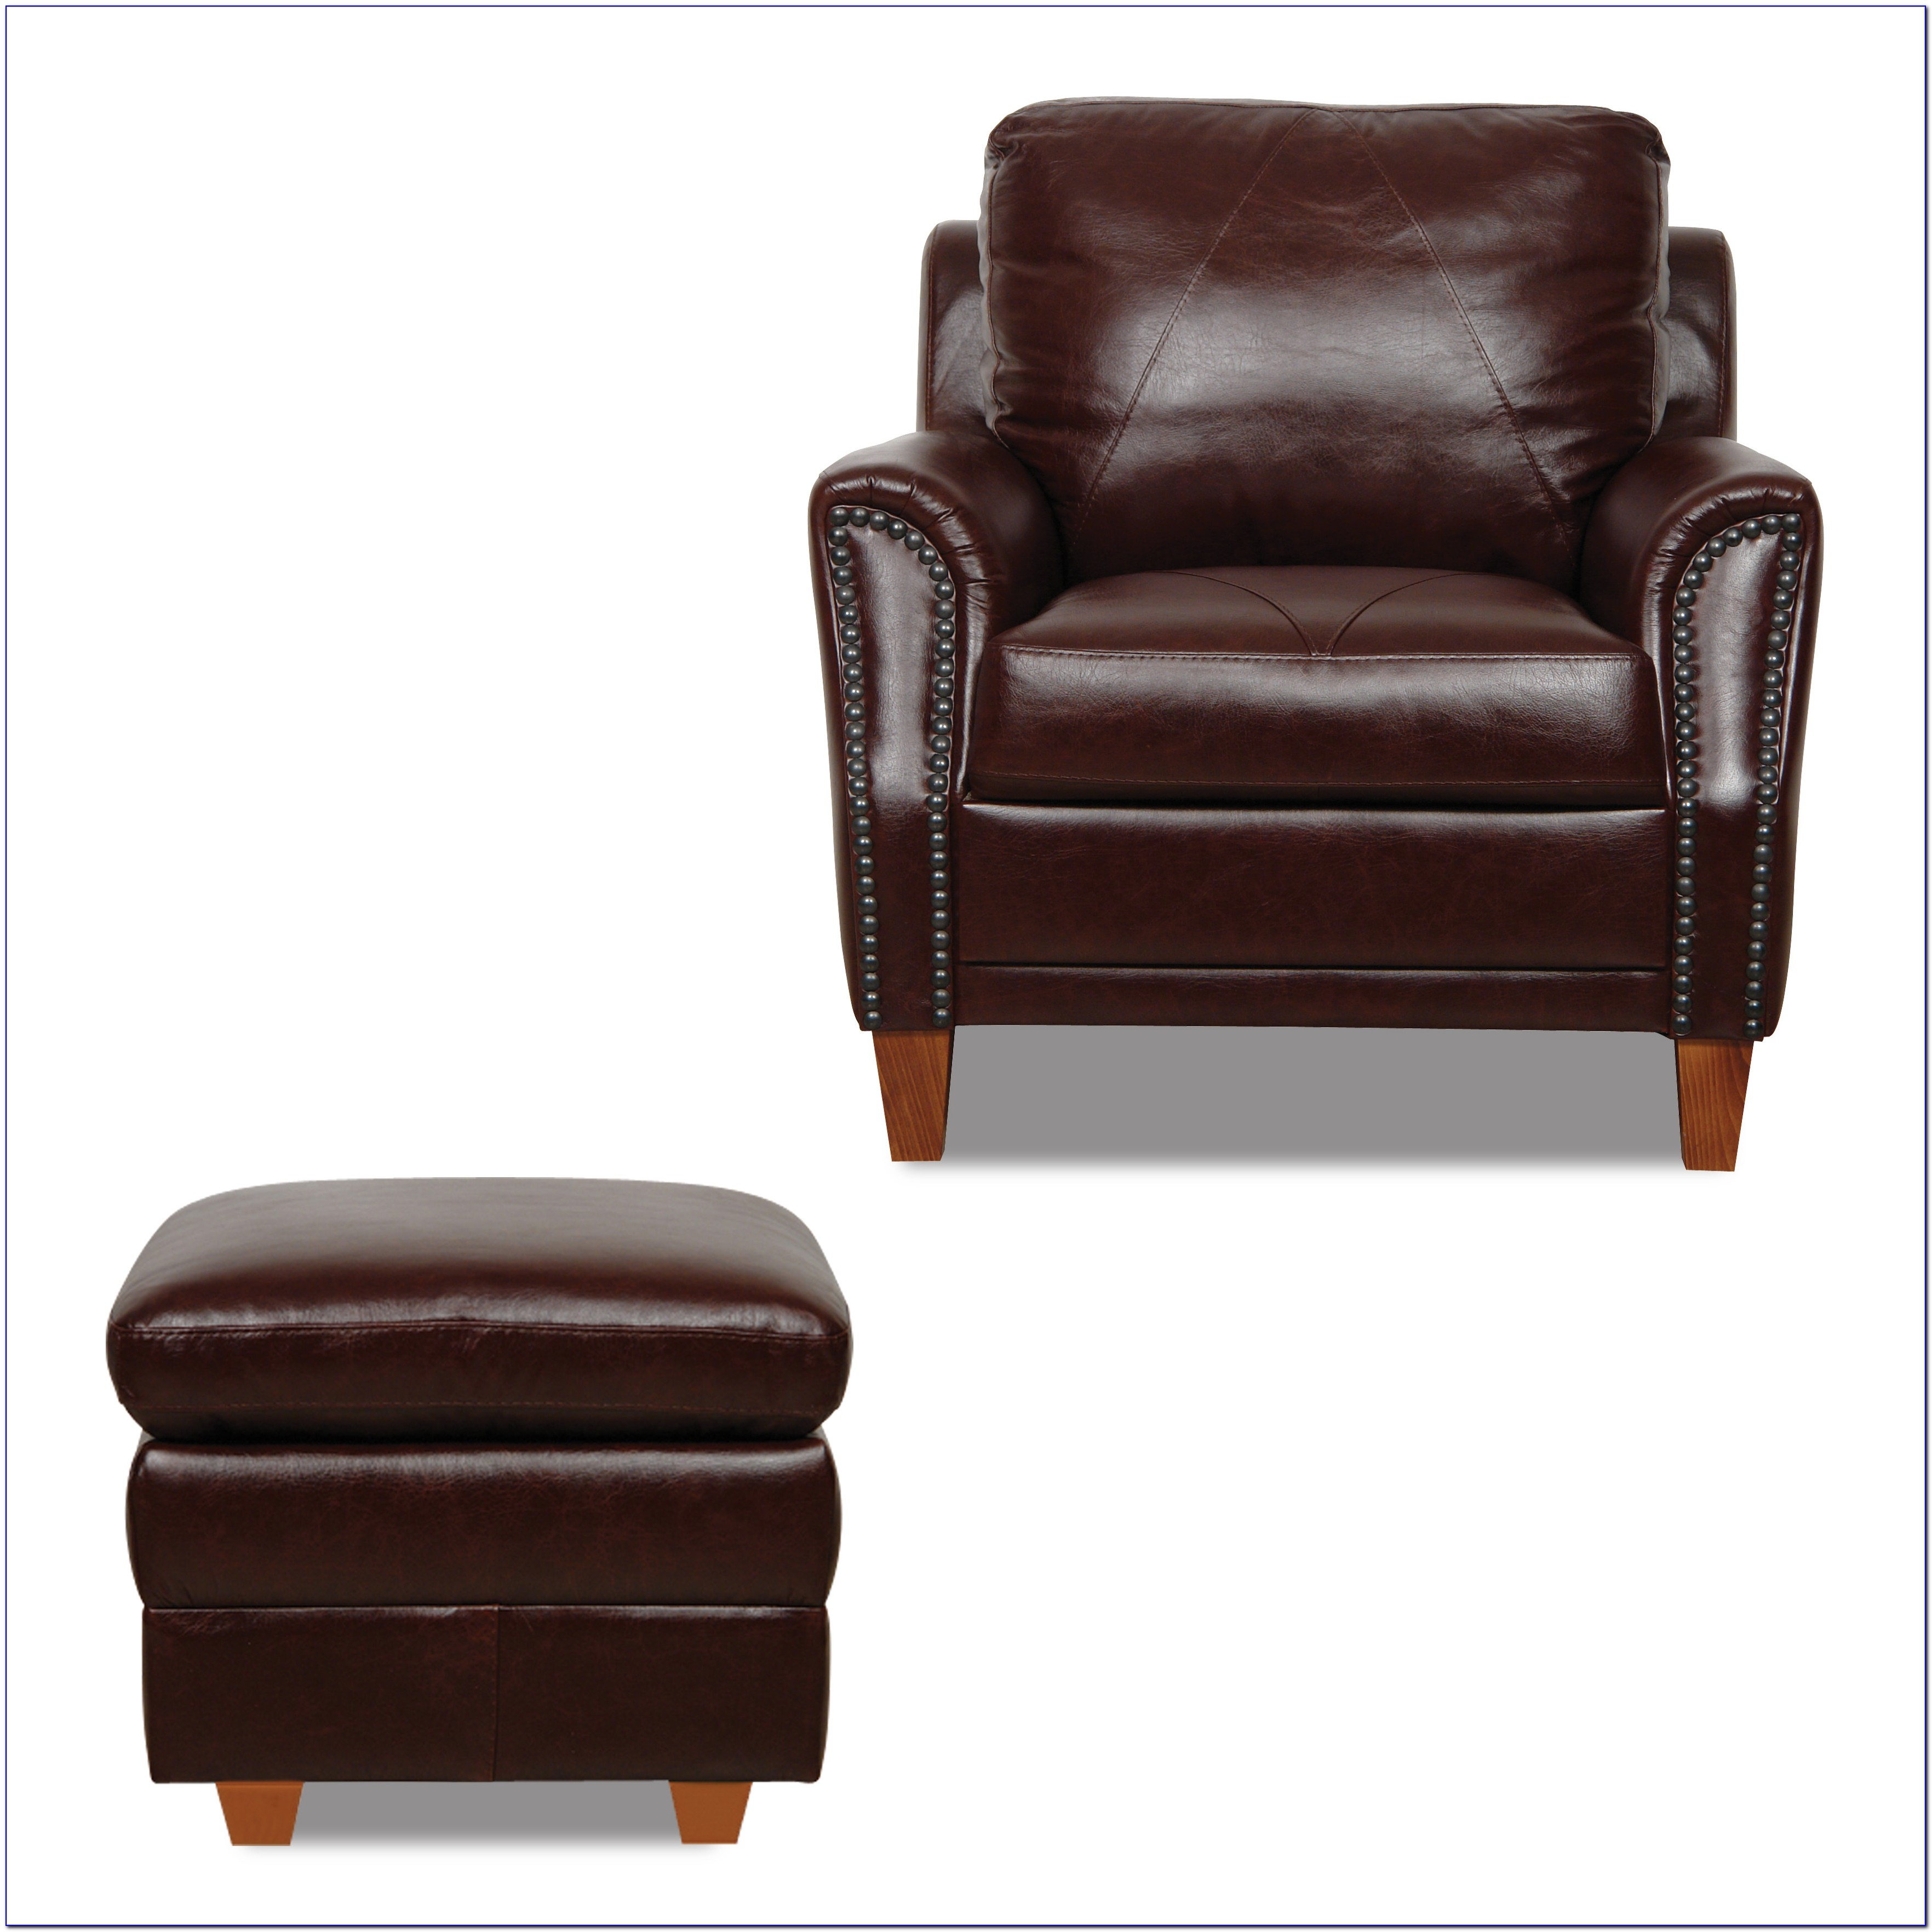 Best Leather Chairs And Ottomans